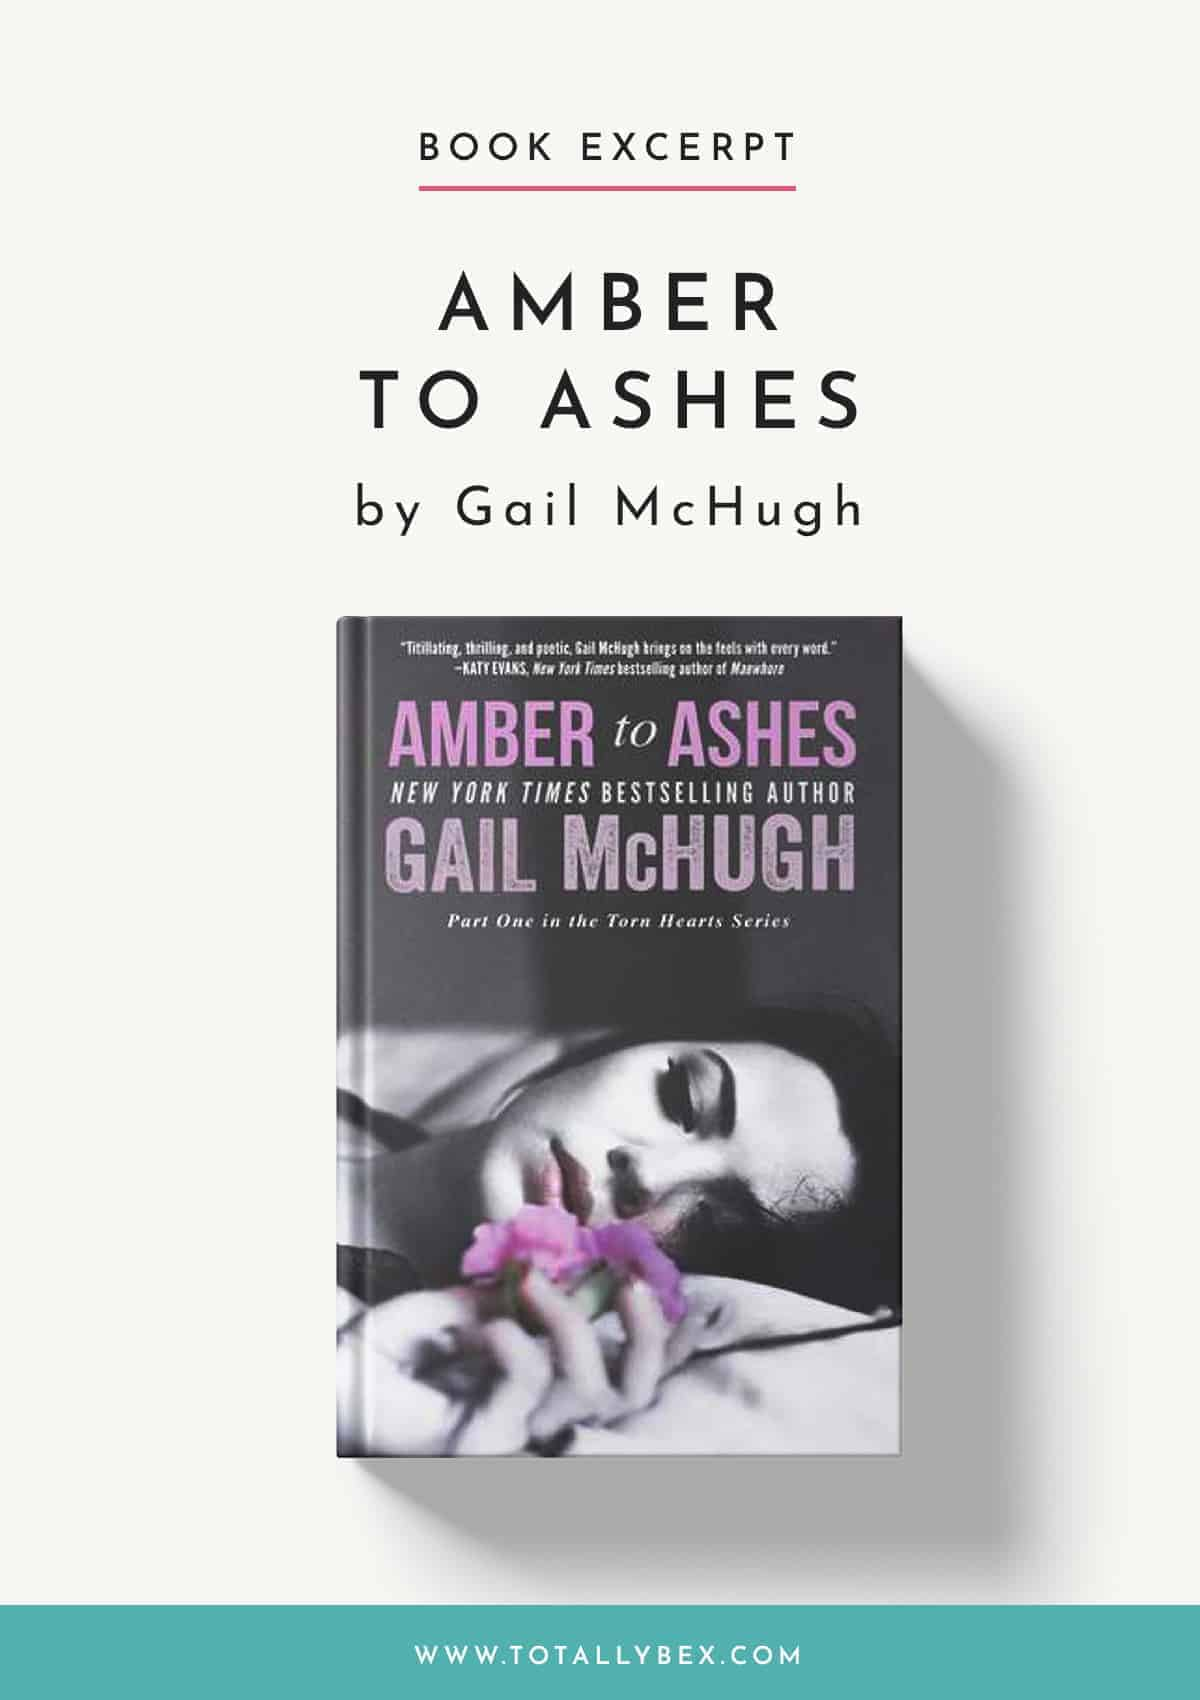 Amber to Ashes by Gail McHugh-Book Excerpt